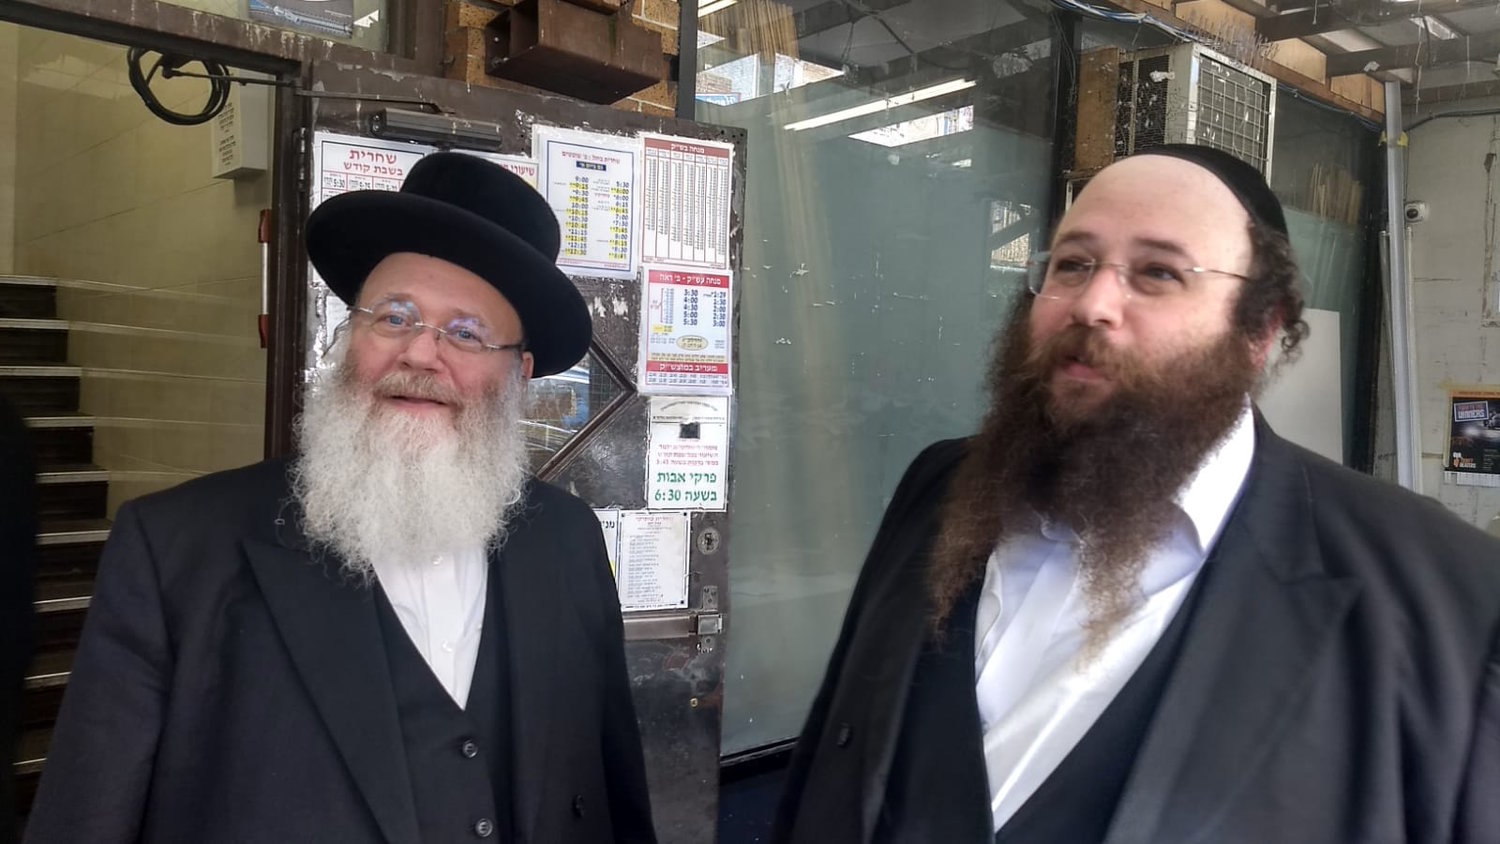 Yosef Rapaport, left, and his son Alexander say attacks on Jews are nothing new. Alexander is a Borough Park resident and executive director of the Masbia Soup Kitchen Network.